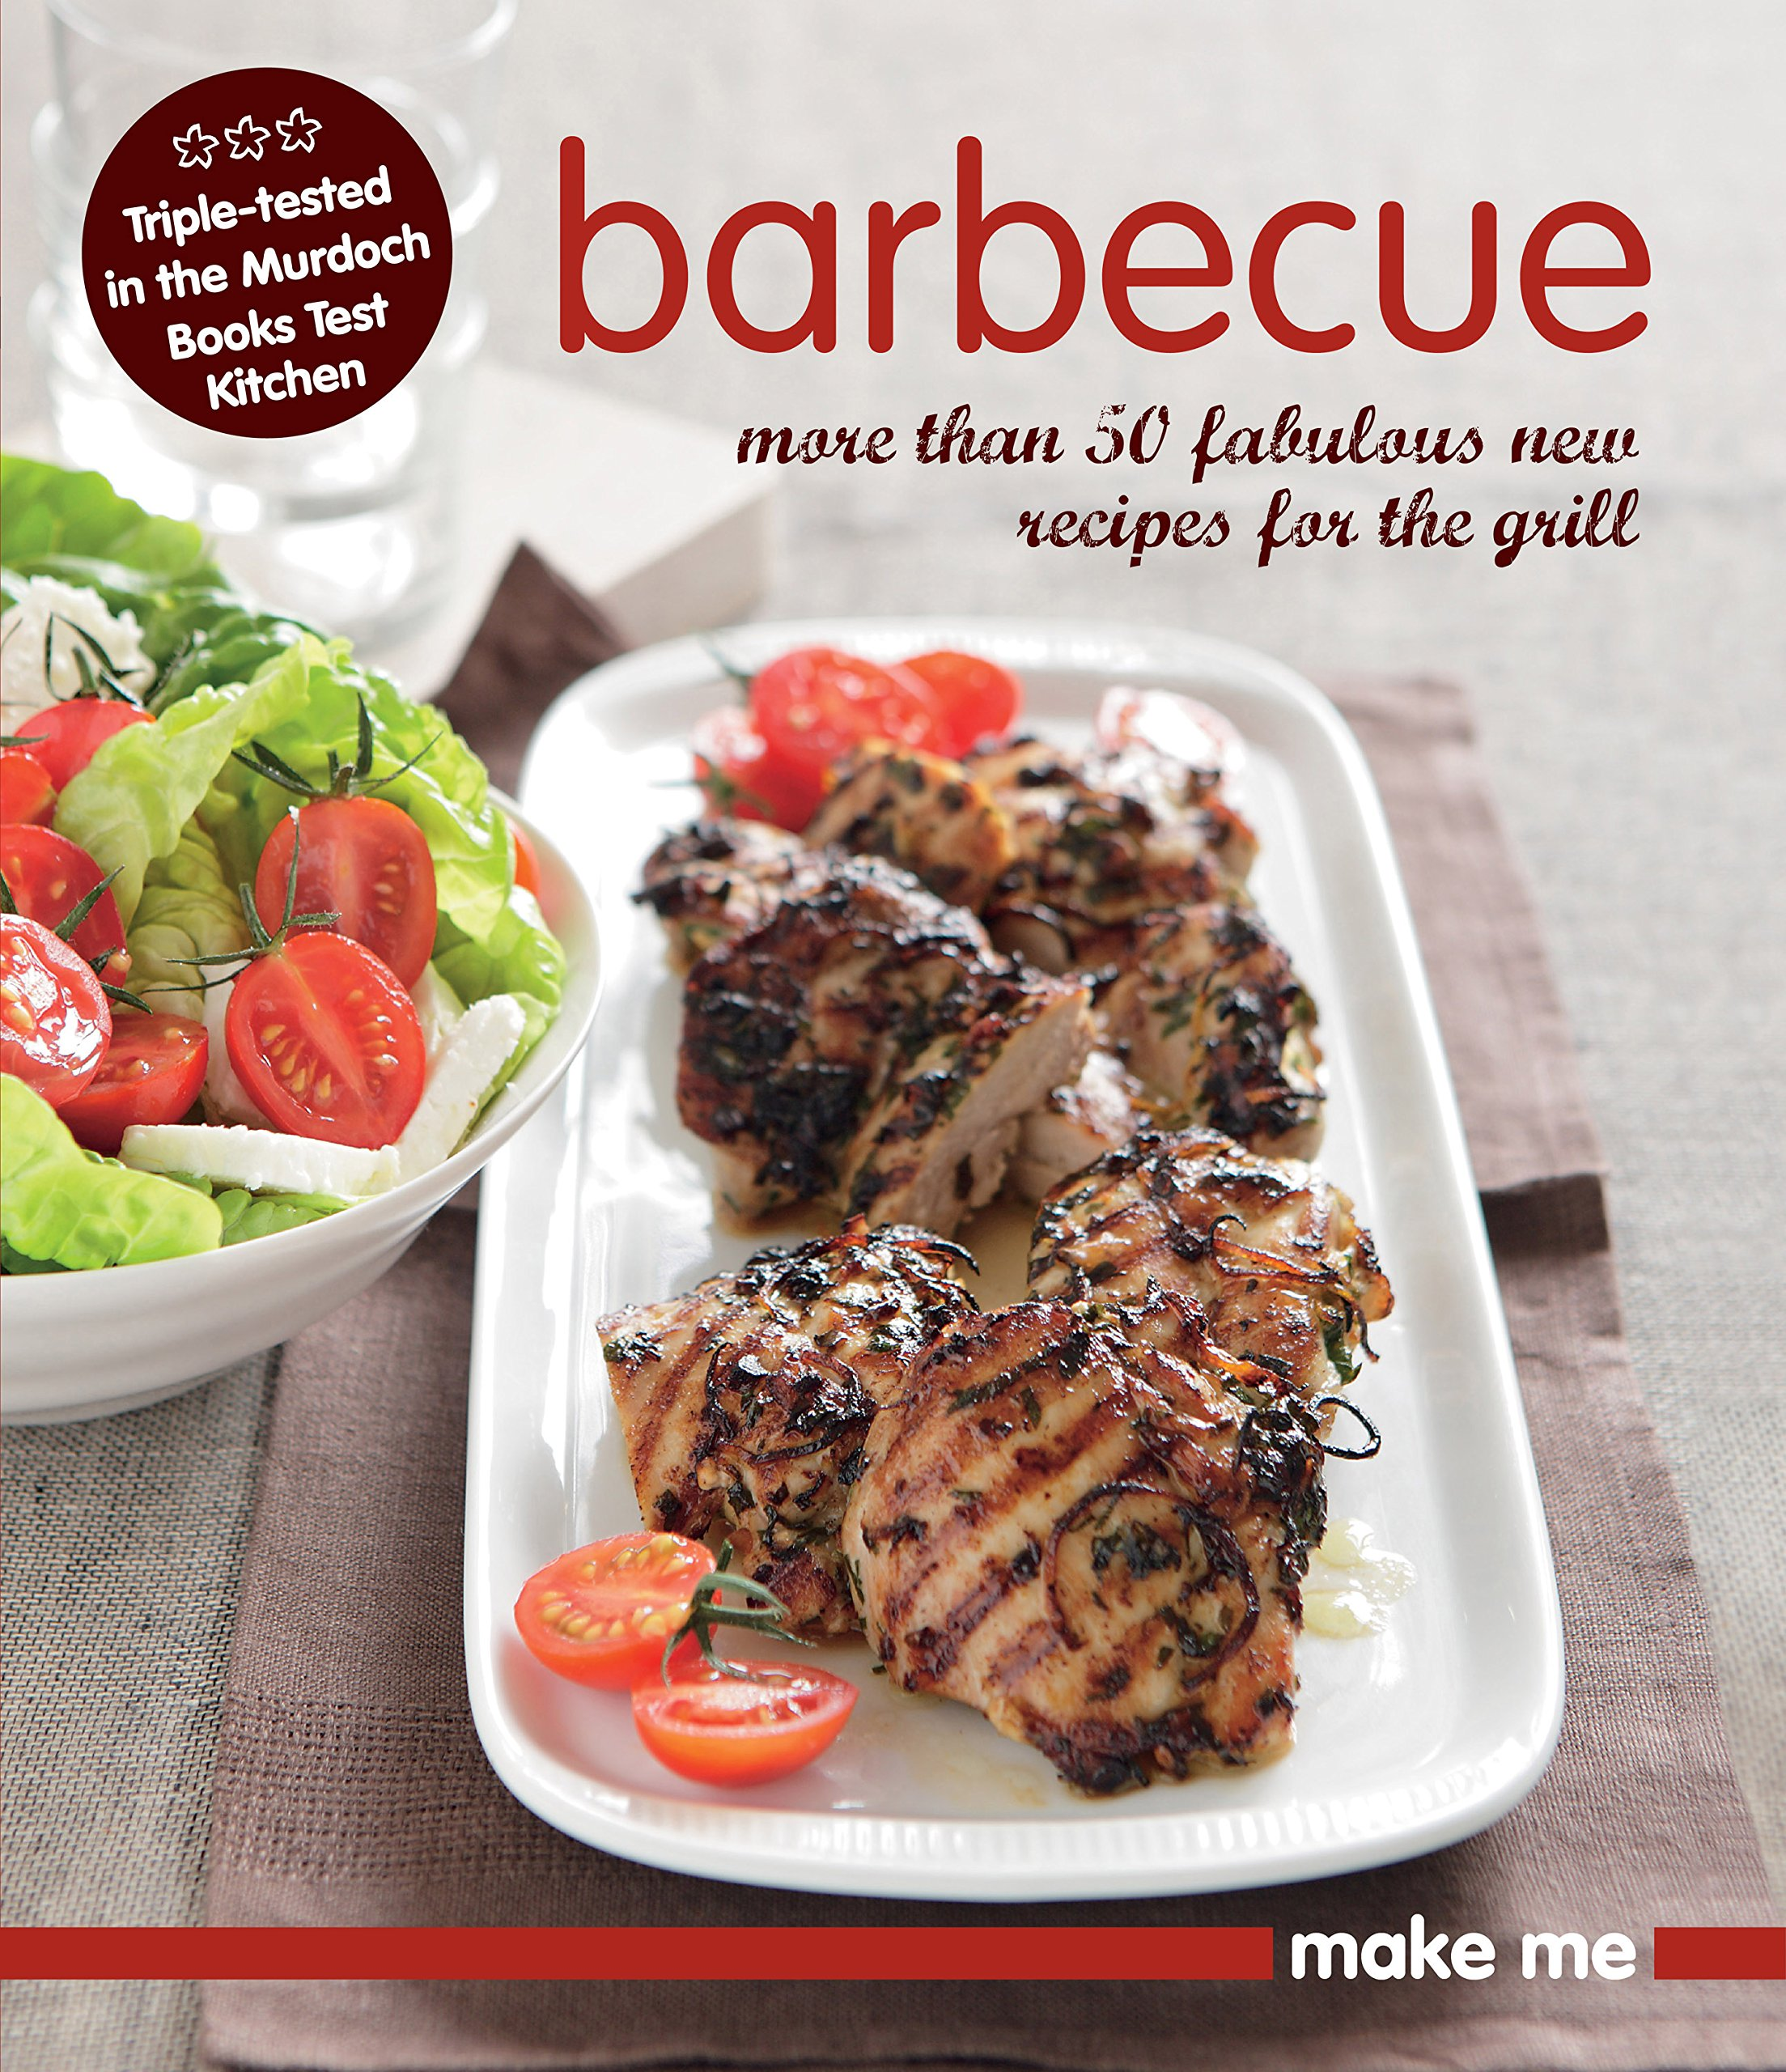 Barbecue: More Than 50 Fabulous New Recipes for the Grill (Make Me) pdf